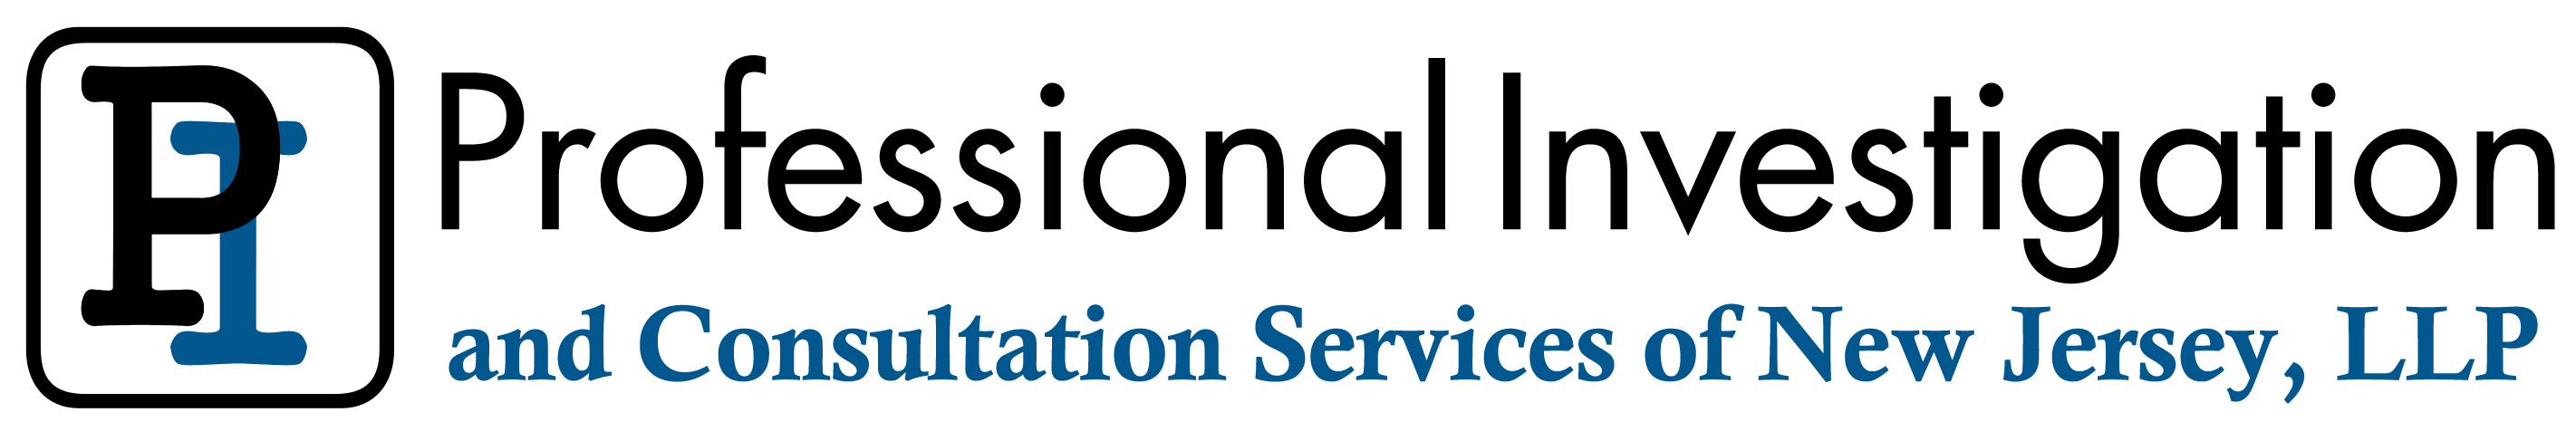 Professional Investigation and Consultation Services of NJ, LLP